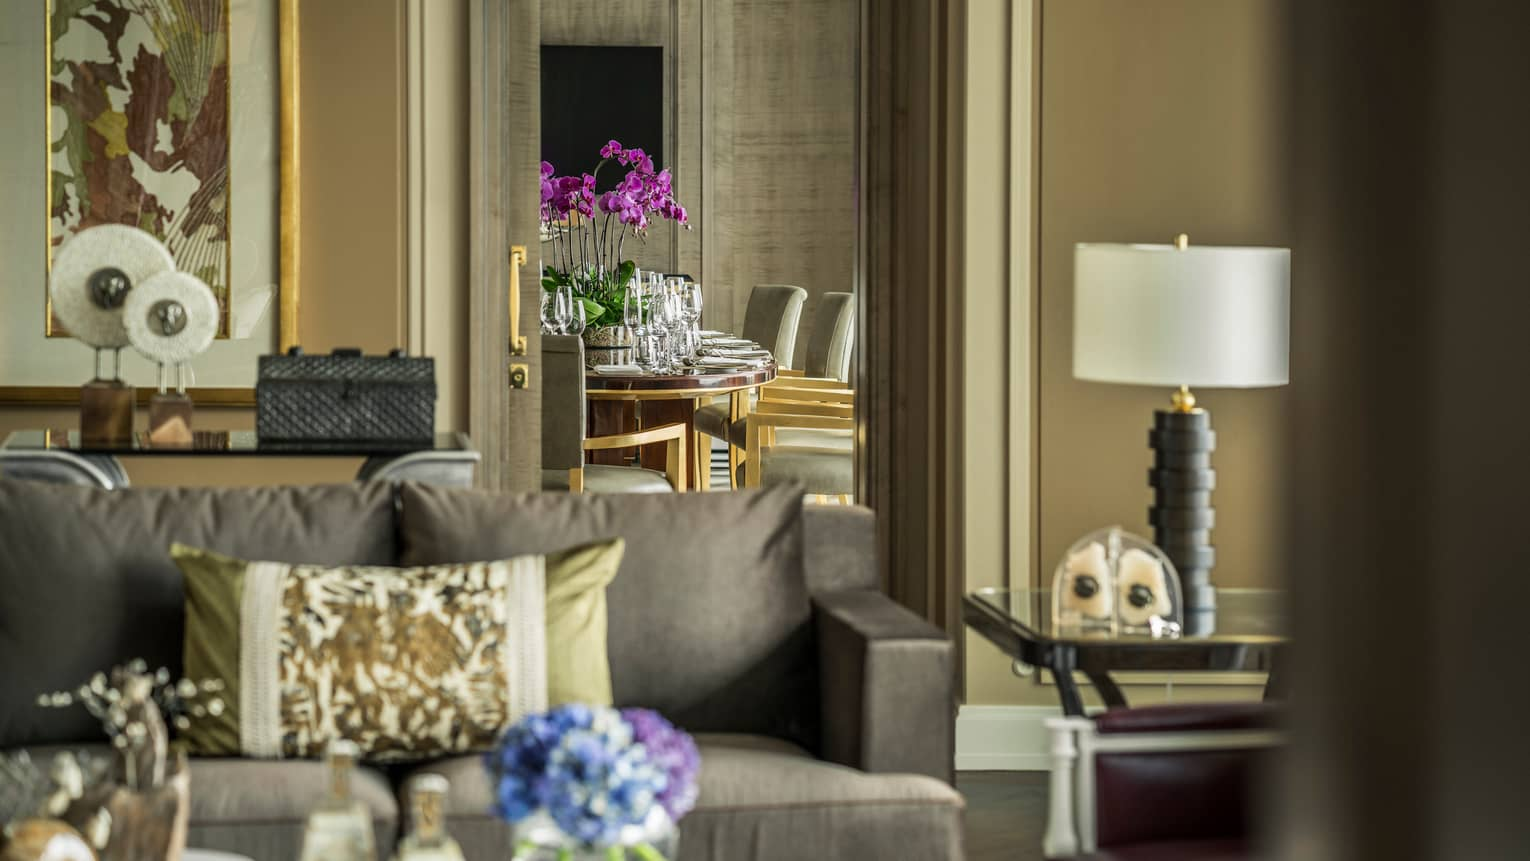 Presidential suite living space with flower arrangement